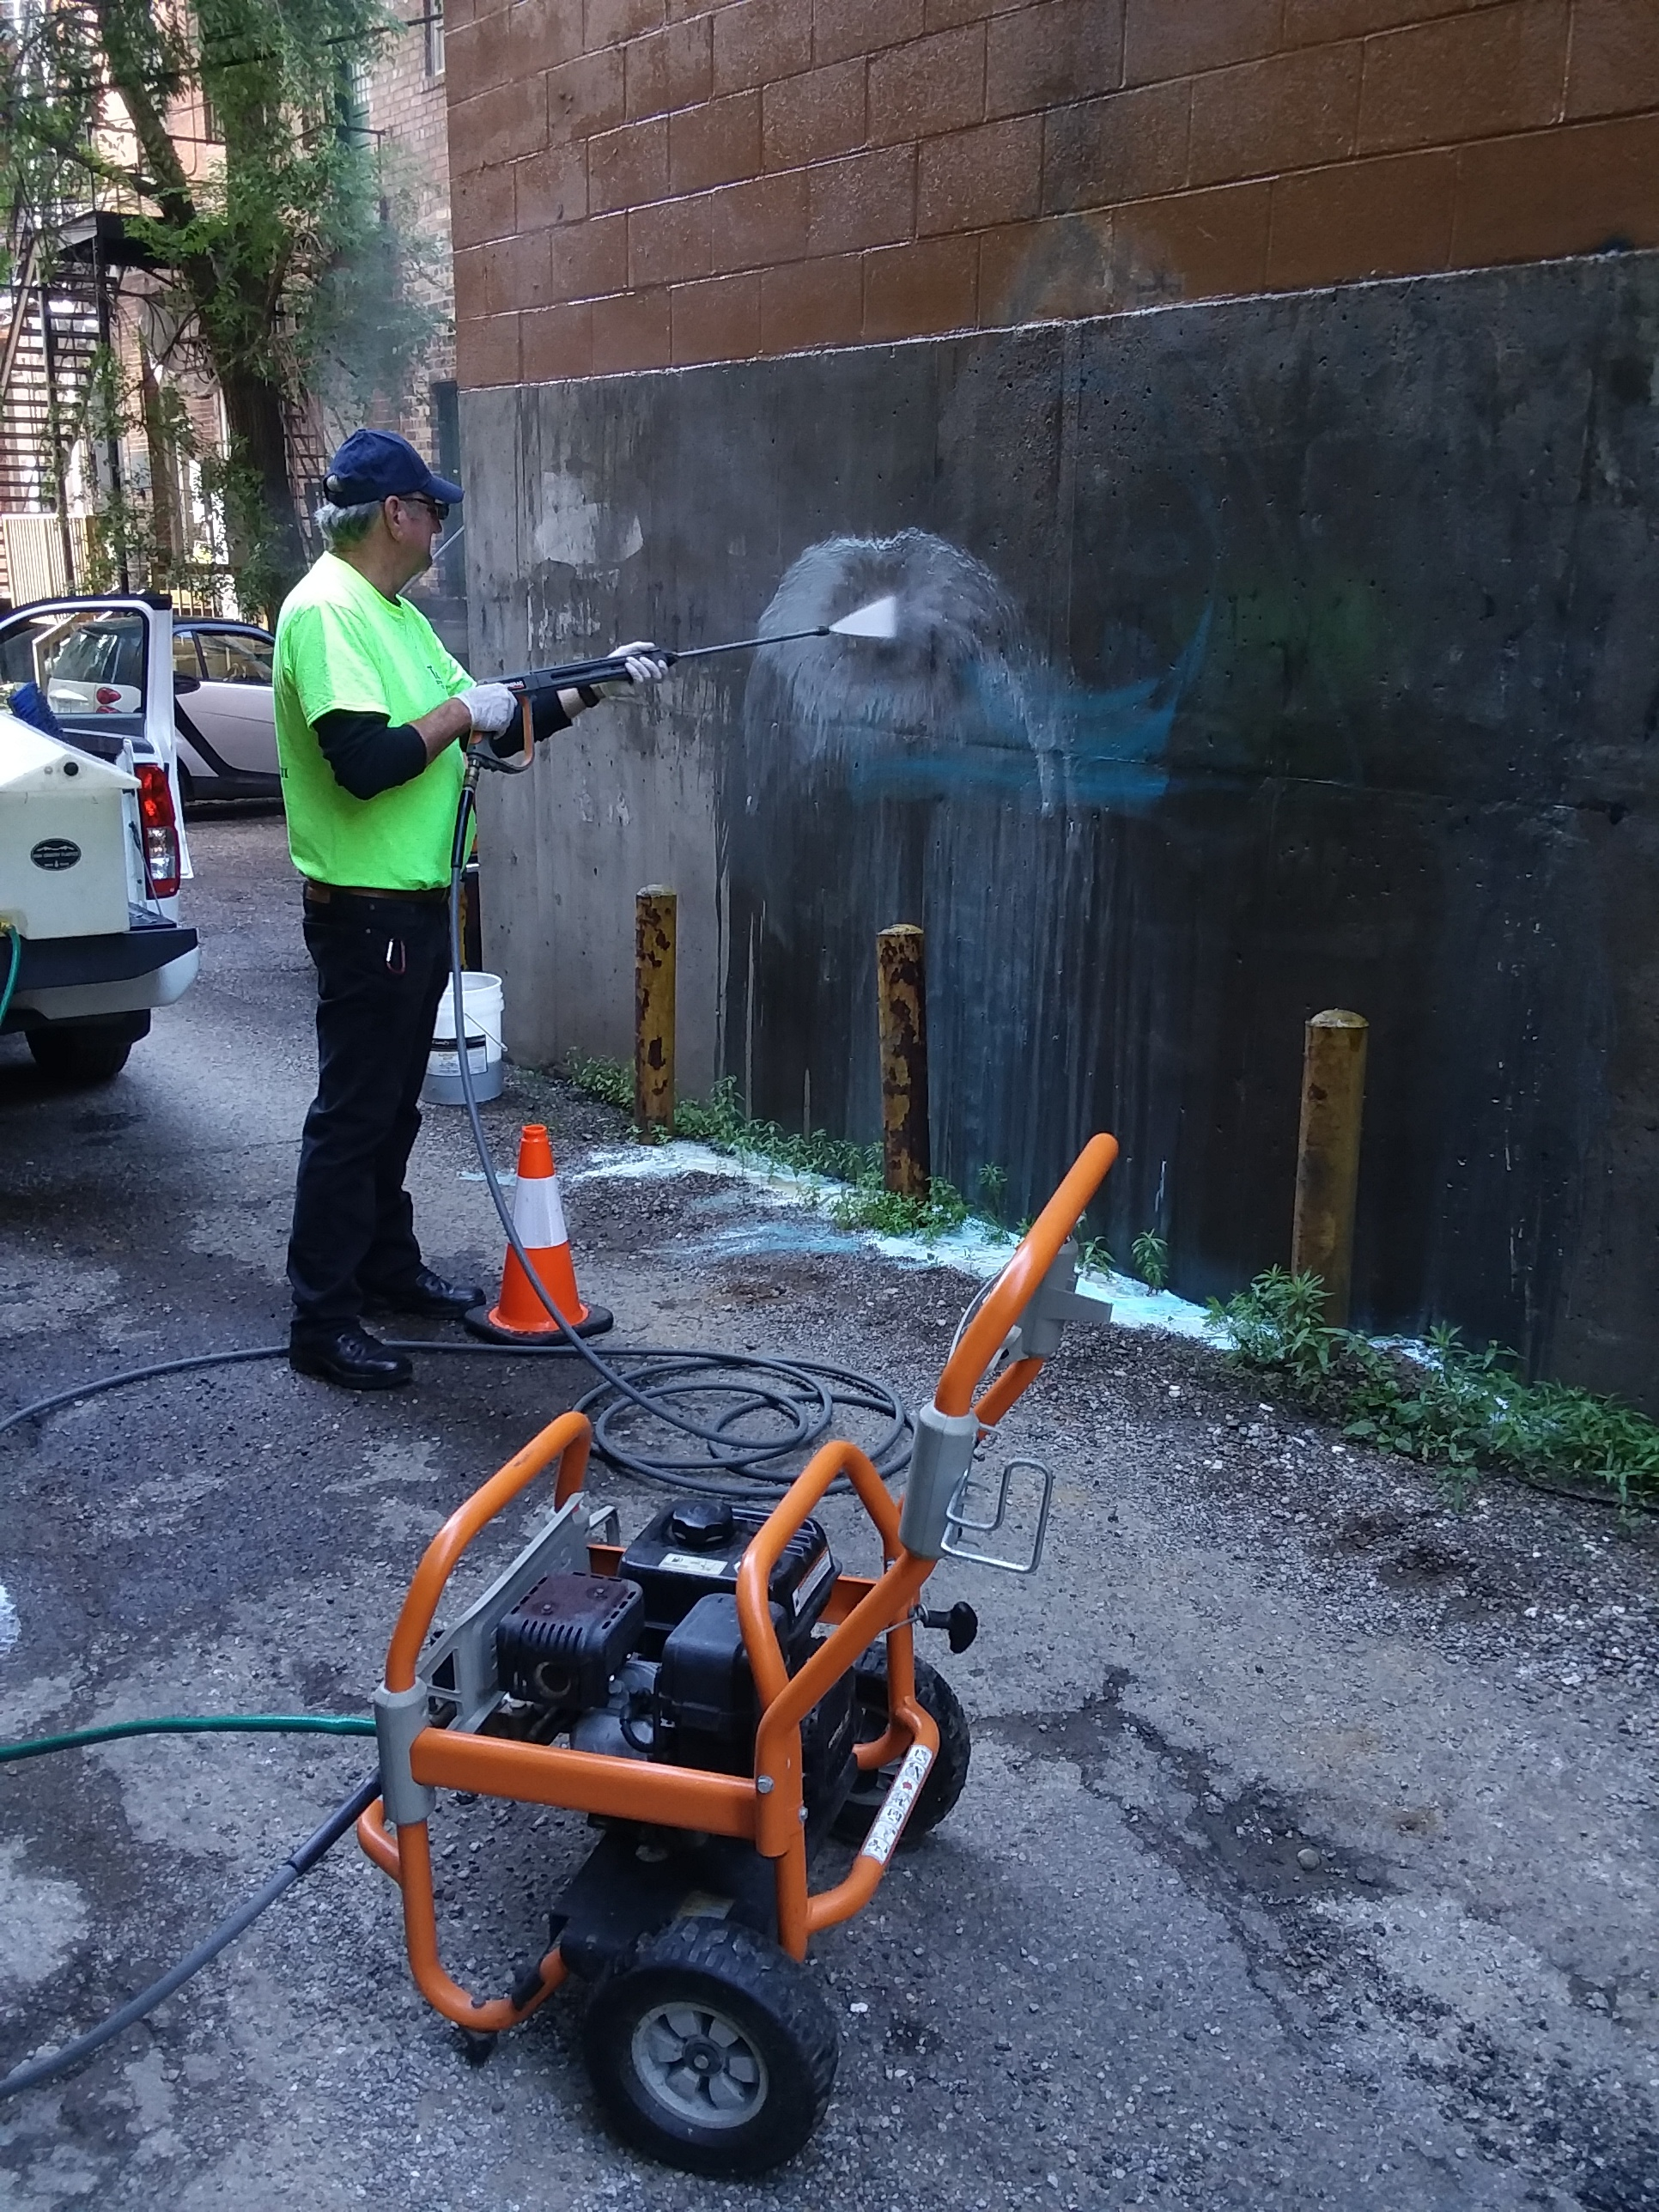 Pictured: Elks member Dave Williams using the power washer to remove the graffiti